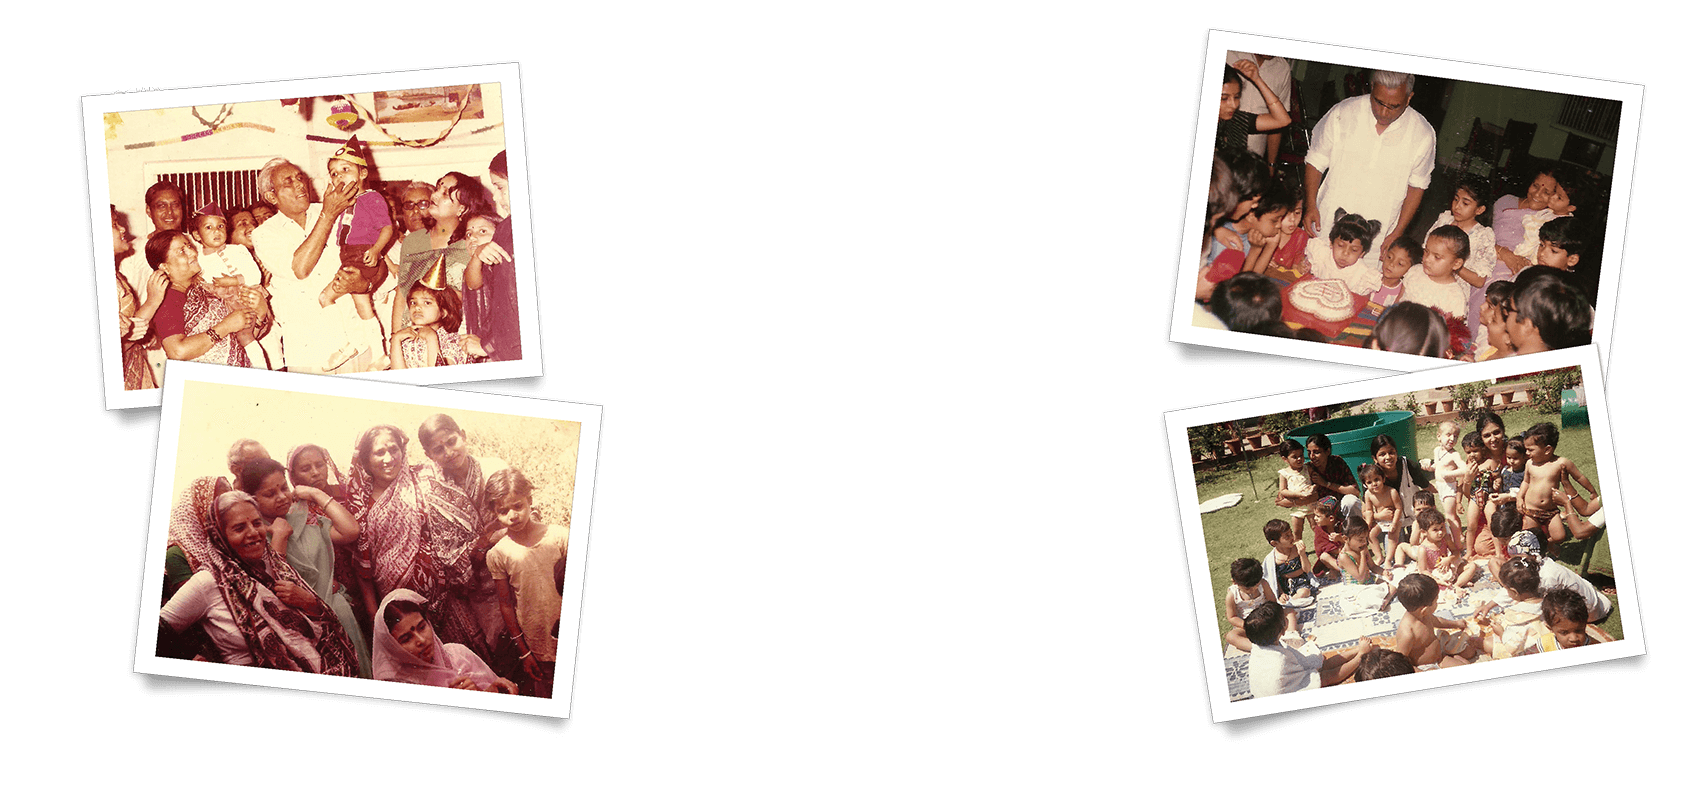 Memories of her early life shaped the way Swati thinks about food and had a direct influence on the way Cheeky Food Co came to life.